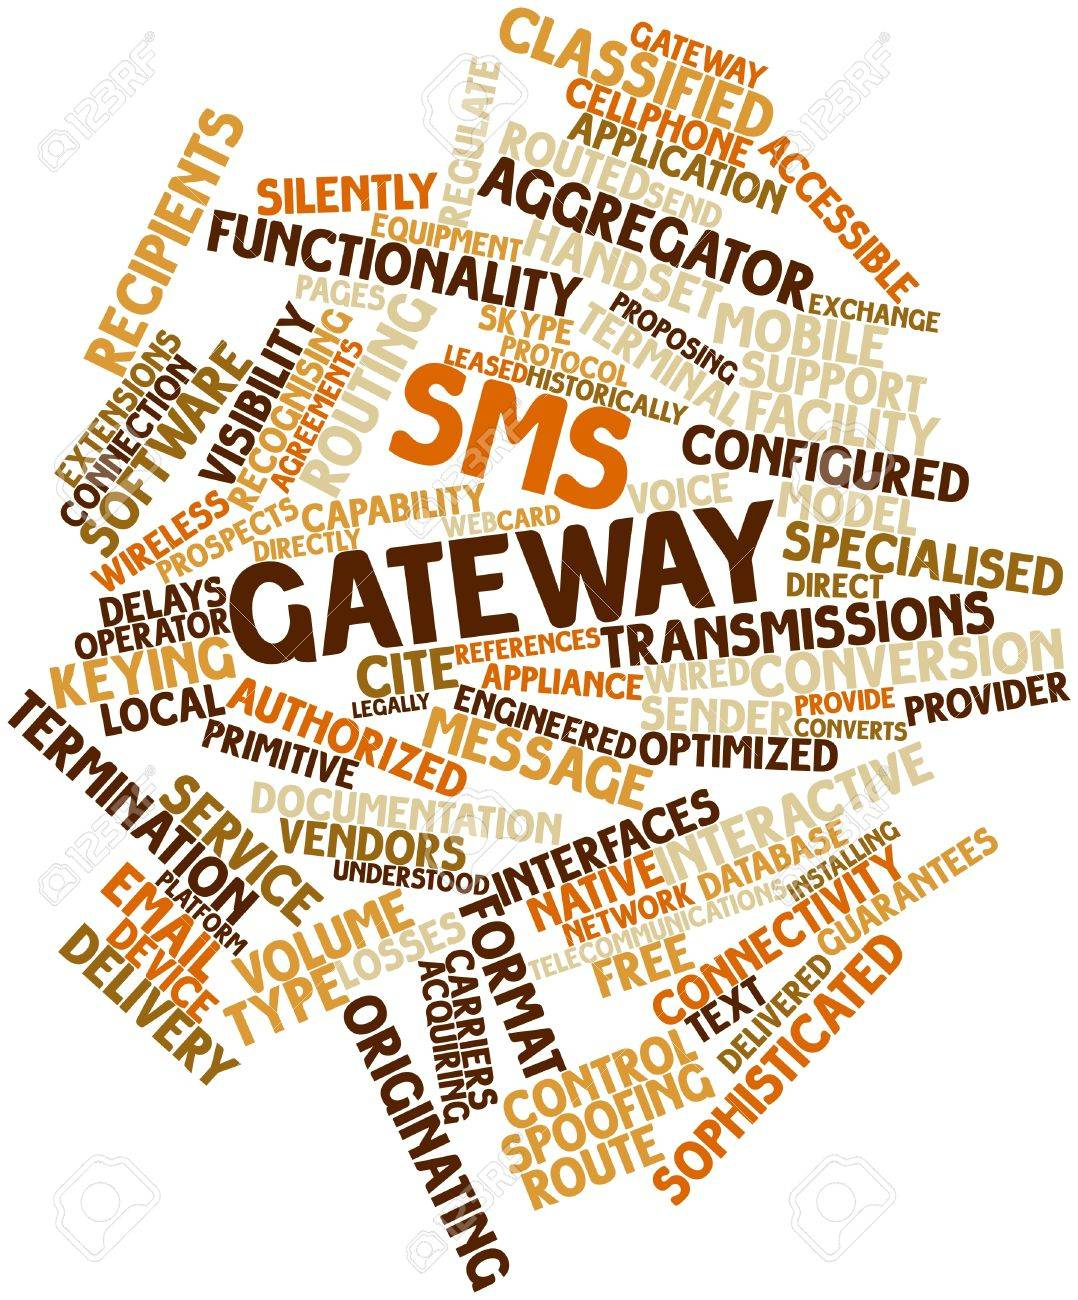 Abstract word cloud for SMS gateway with related tags and terms